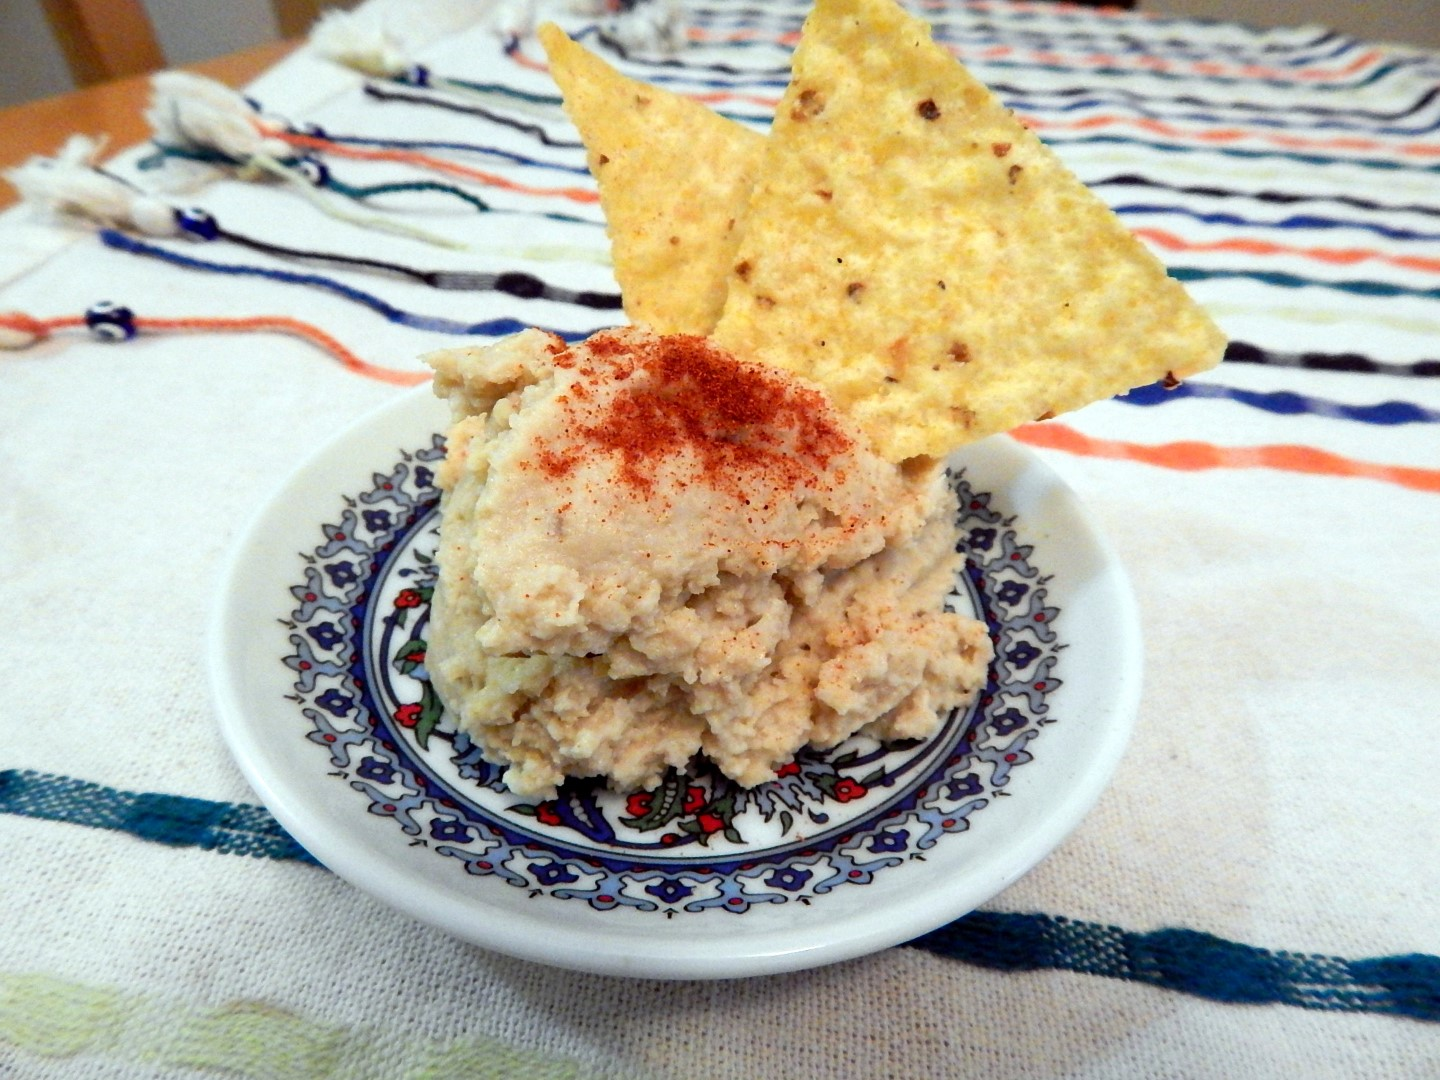 Hummus served with corn chips